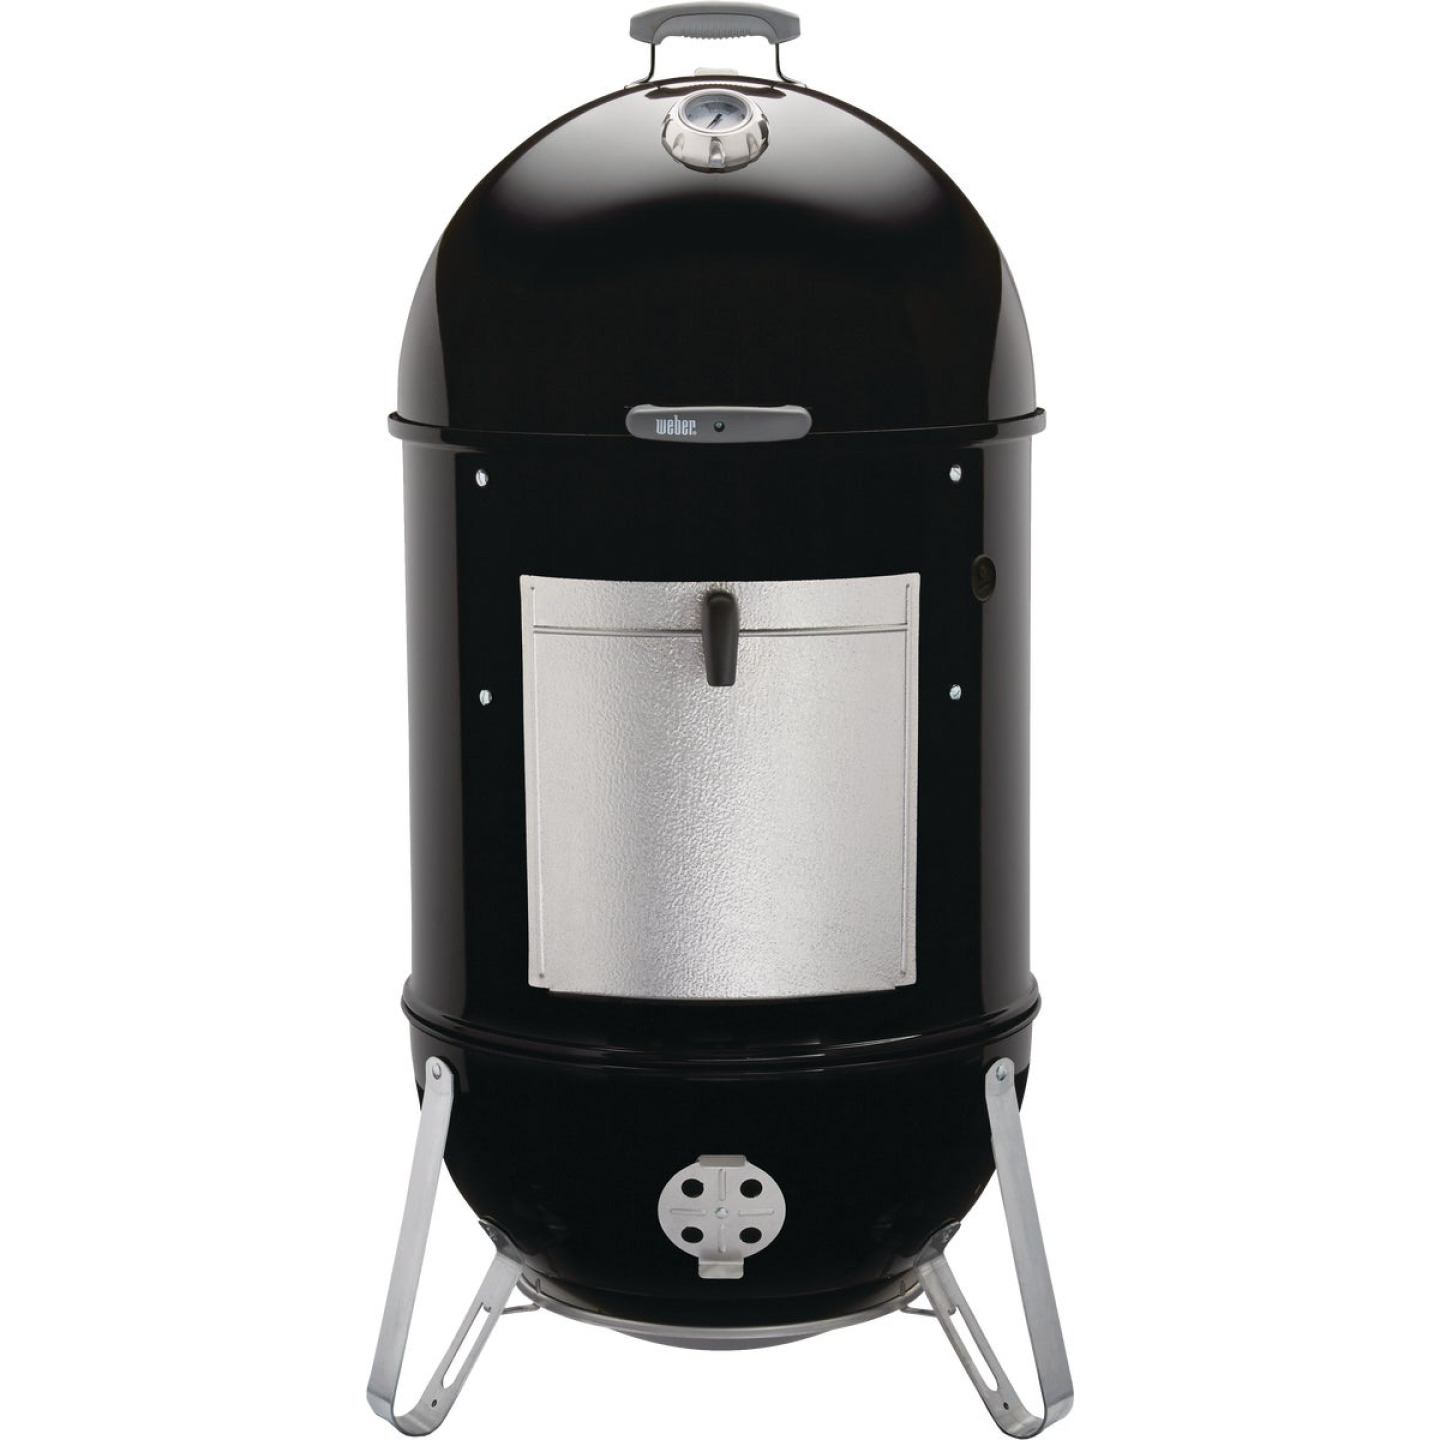 Weber Smokey Mountain Cooker 22 In. Dia. 726 Sq. In. Vertical Charcoal Smoker Image 11